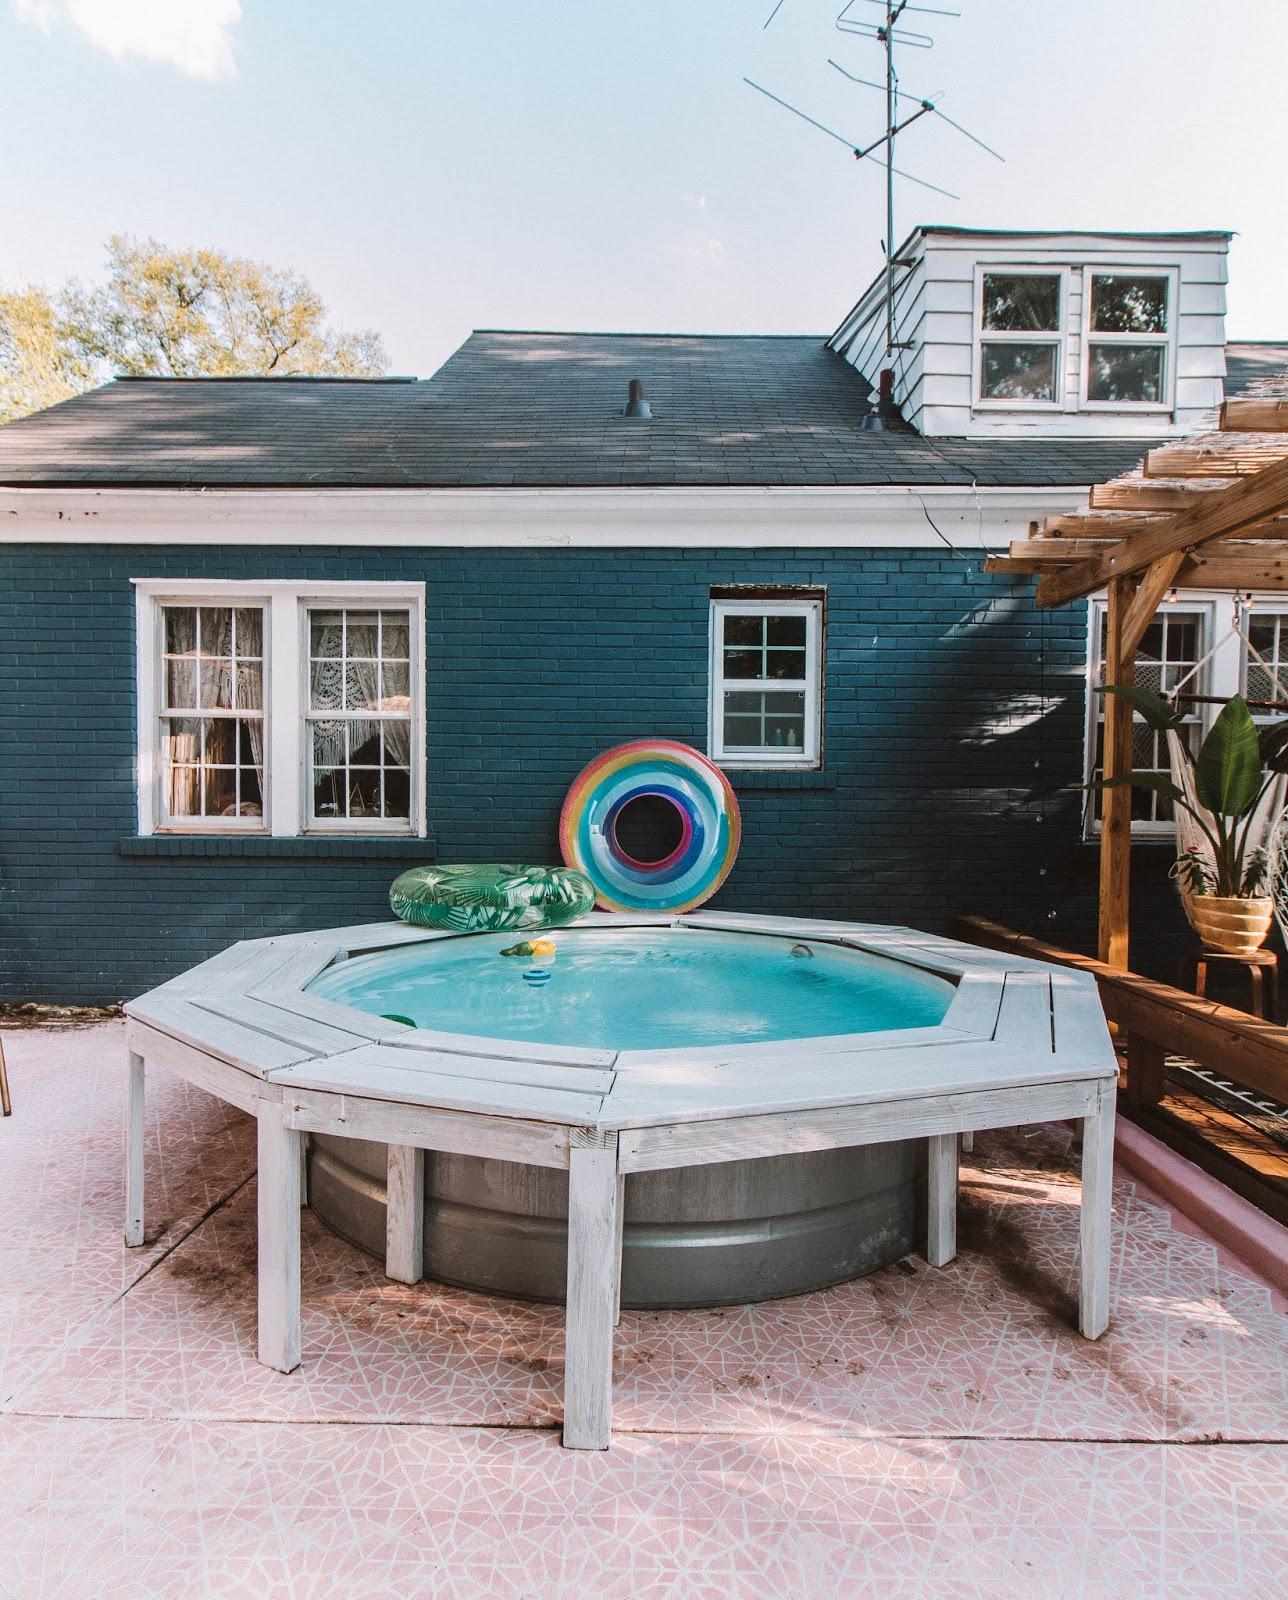 Home Tour Our Diy Boho Backyard Oasis